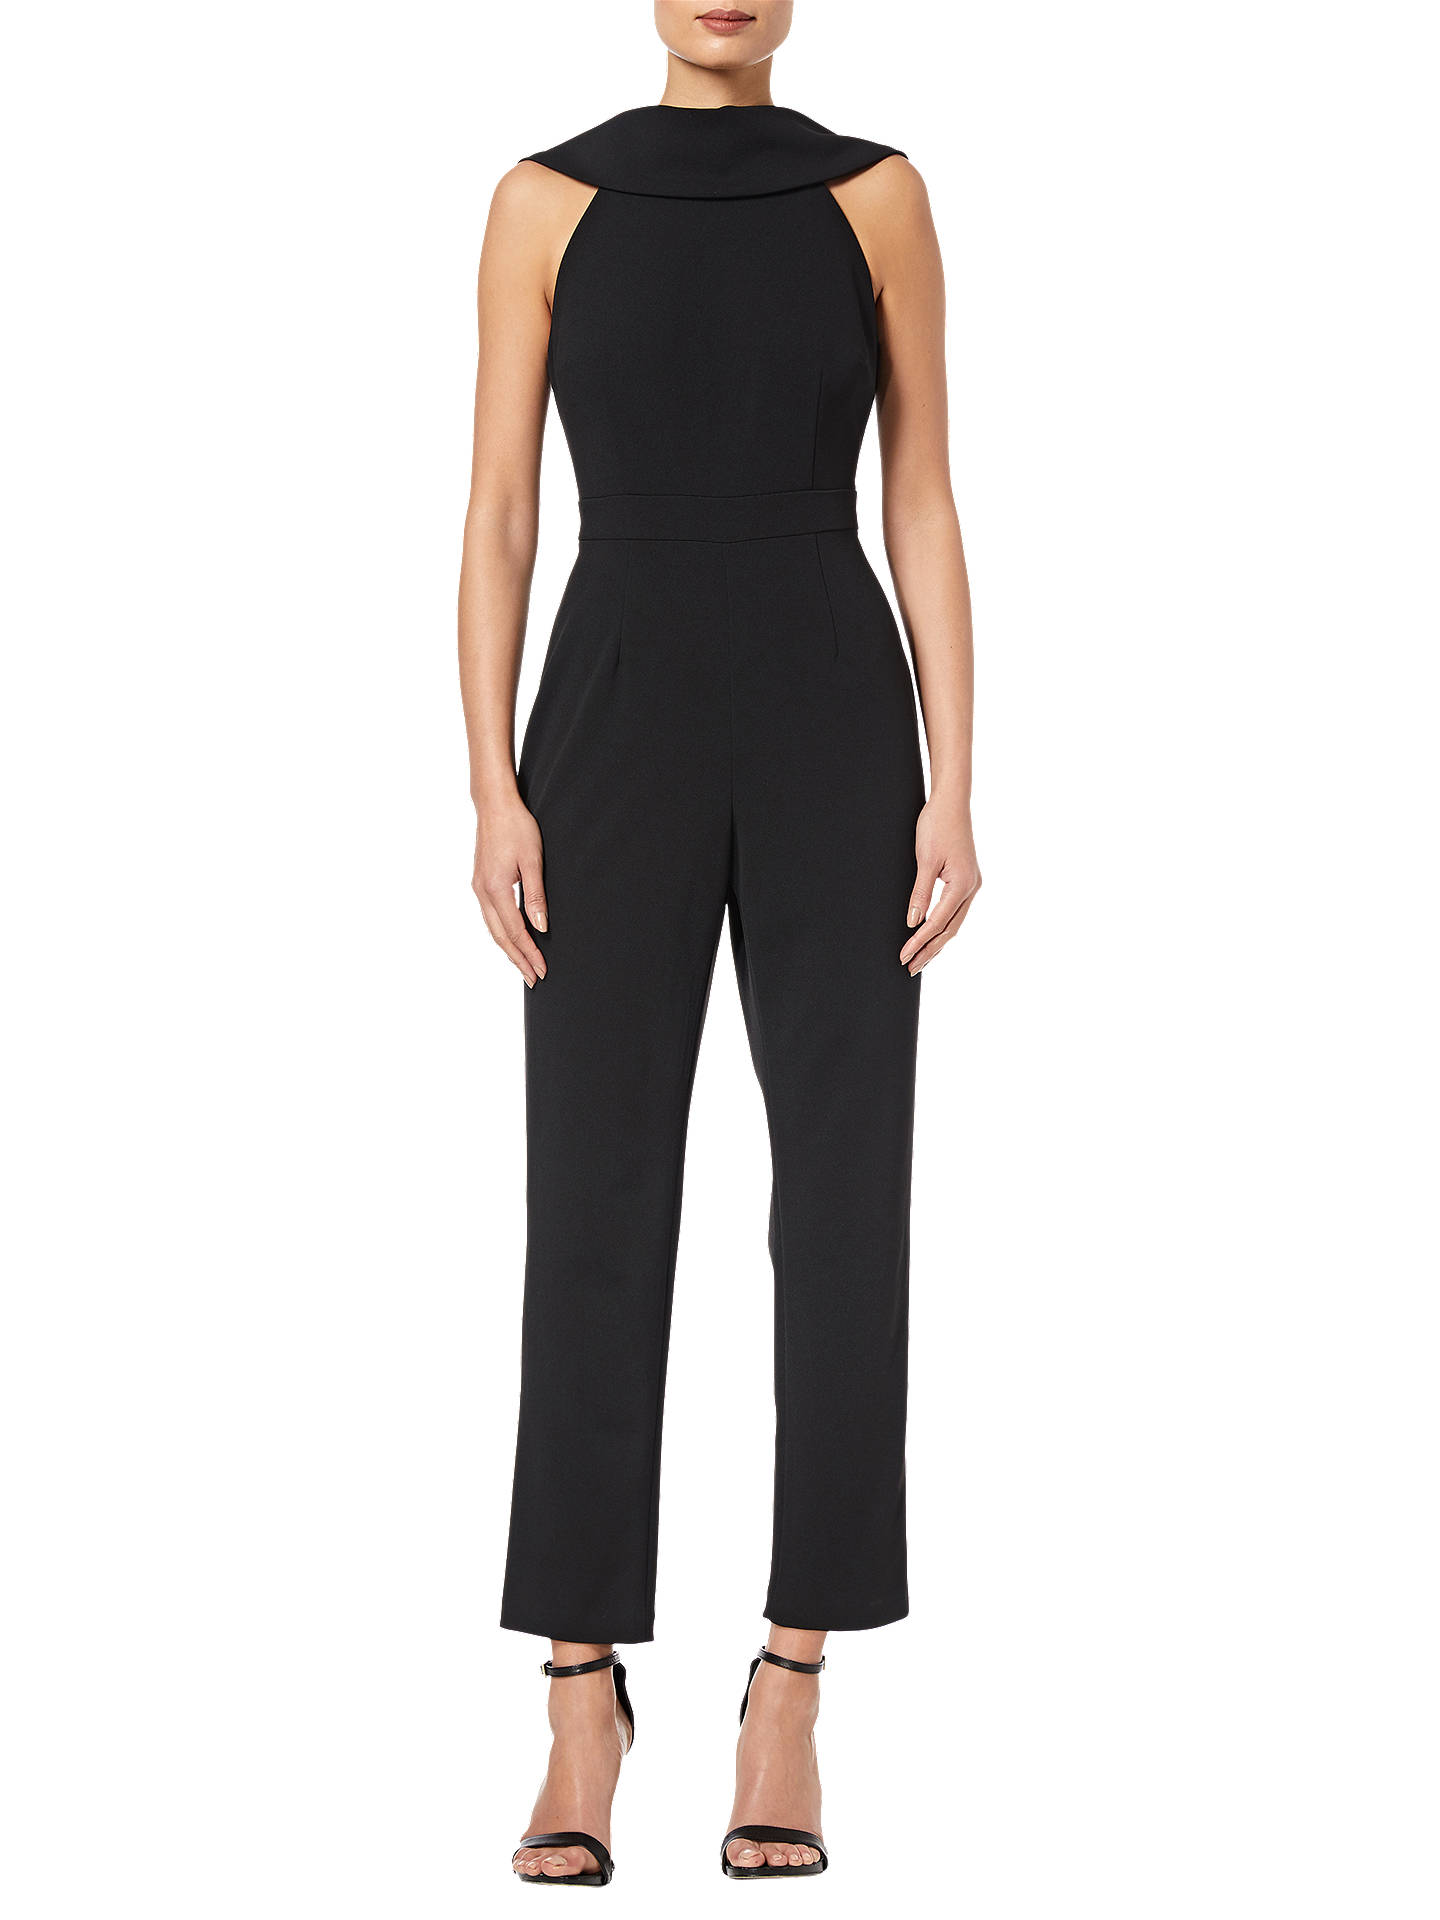 BuyAdrianna Papell Petite Crepe Jumpsuit, Black, 6 Online at johnlewis.com